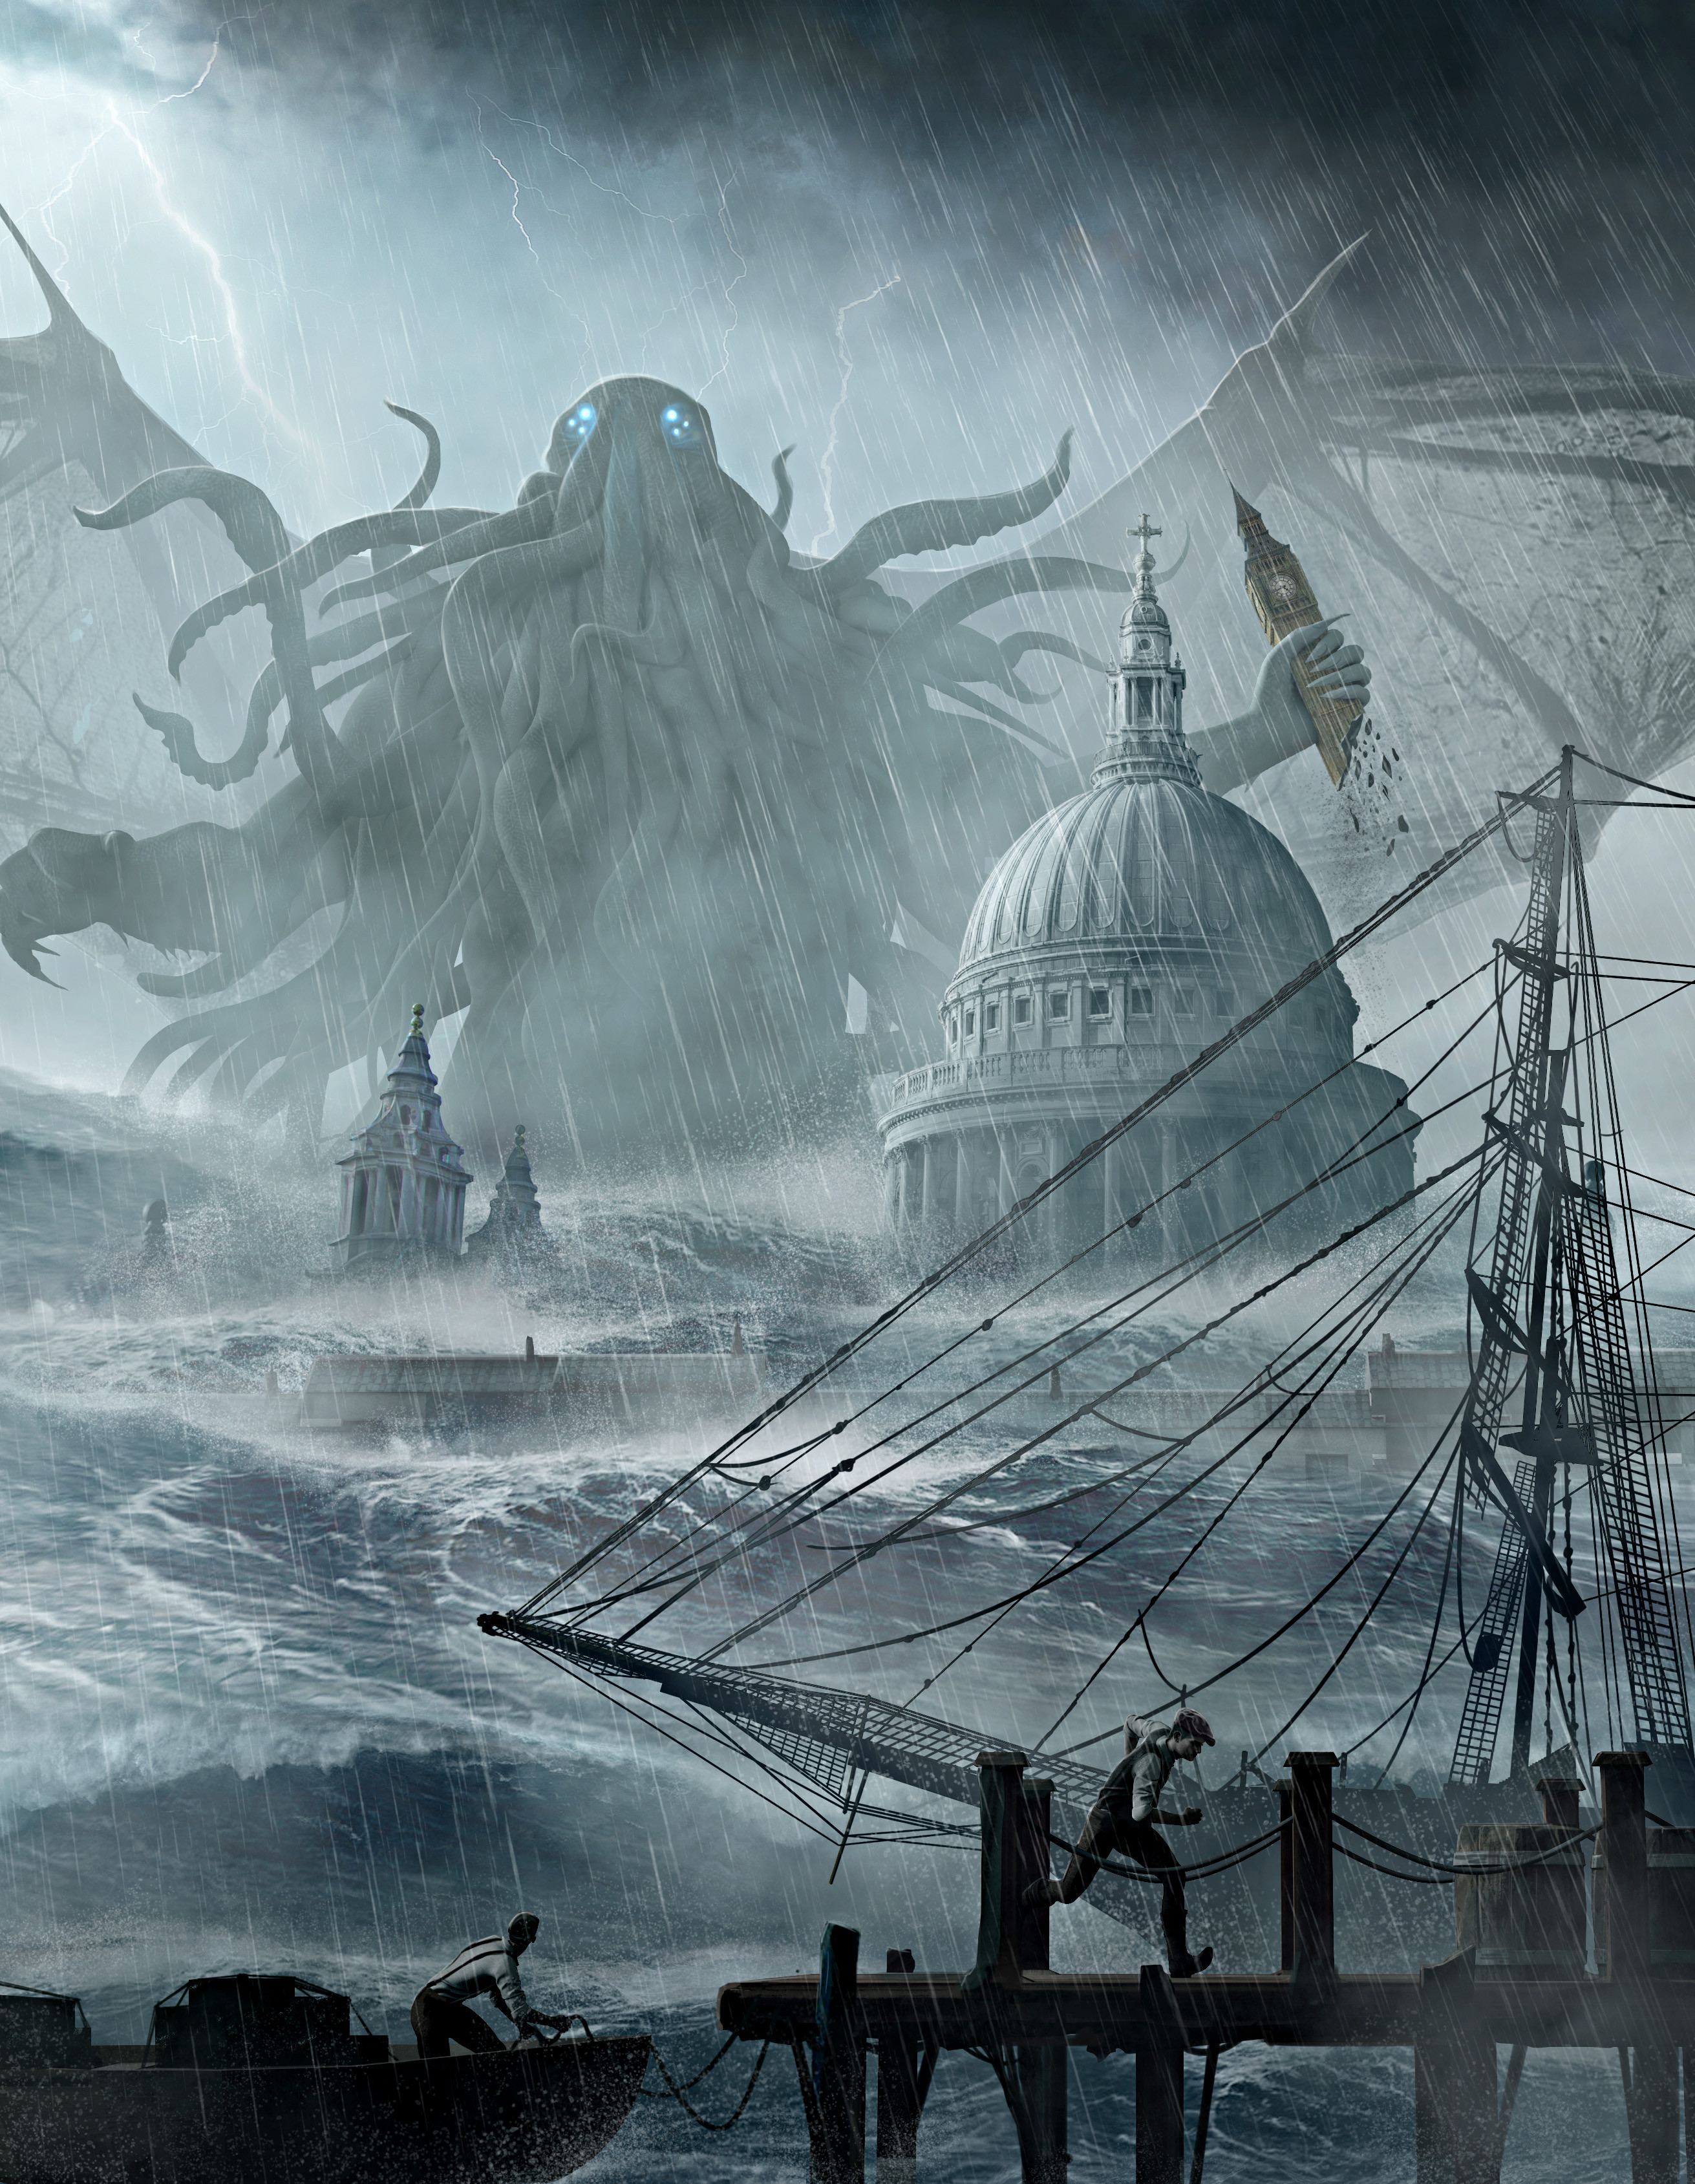 Pax Cthuliana - H. P. Lovecraft's Call of Cthulhu